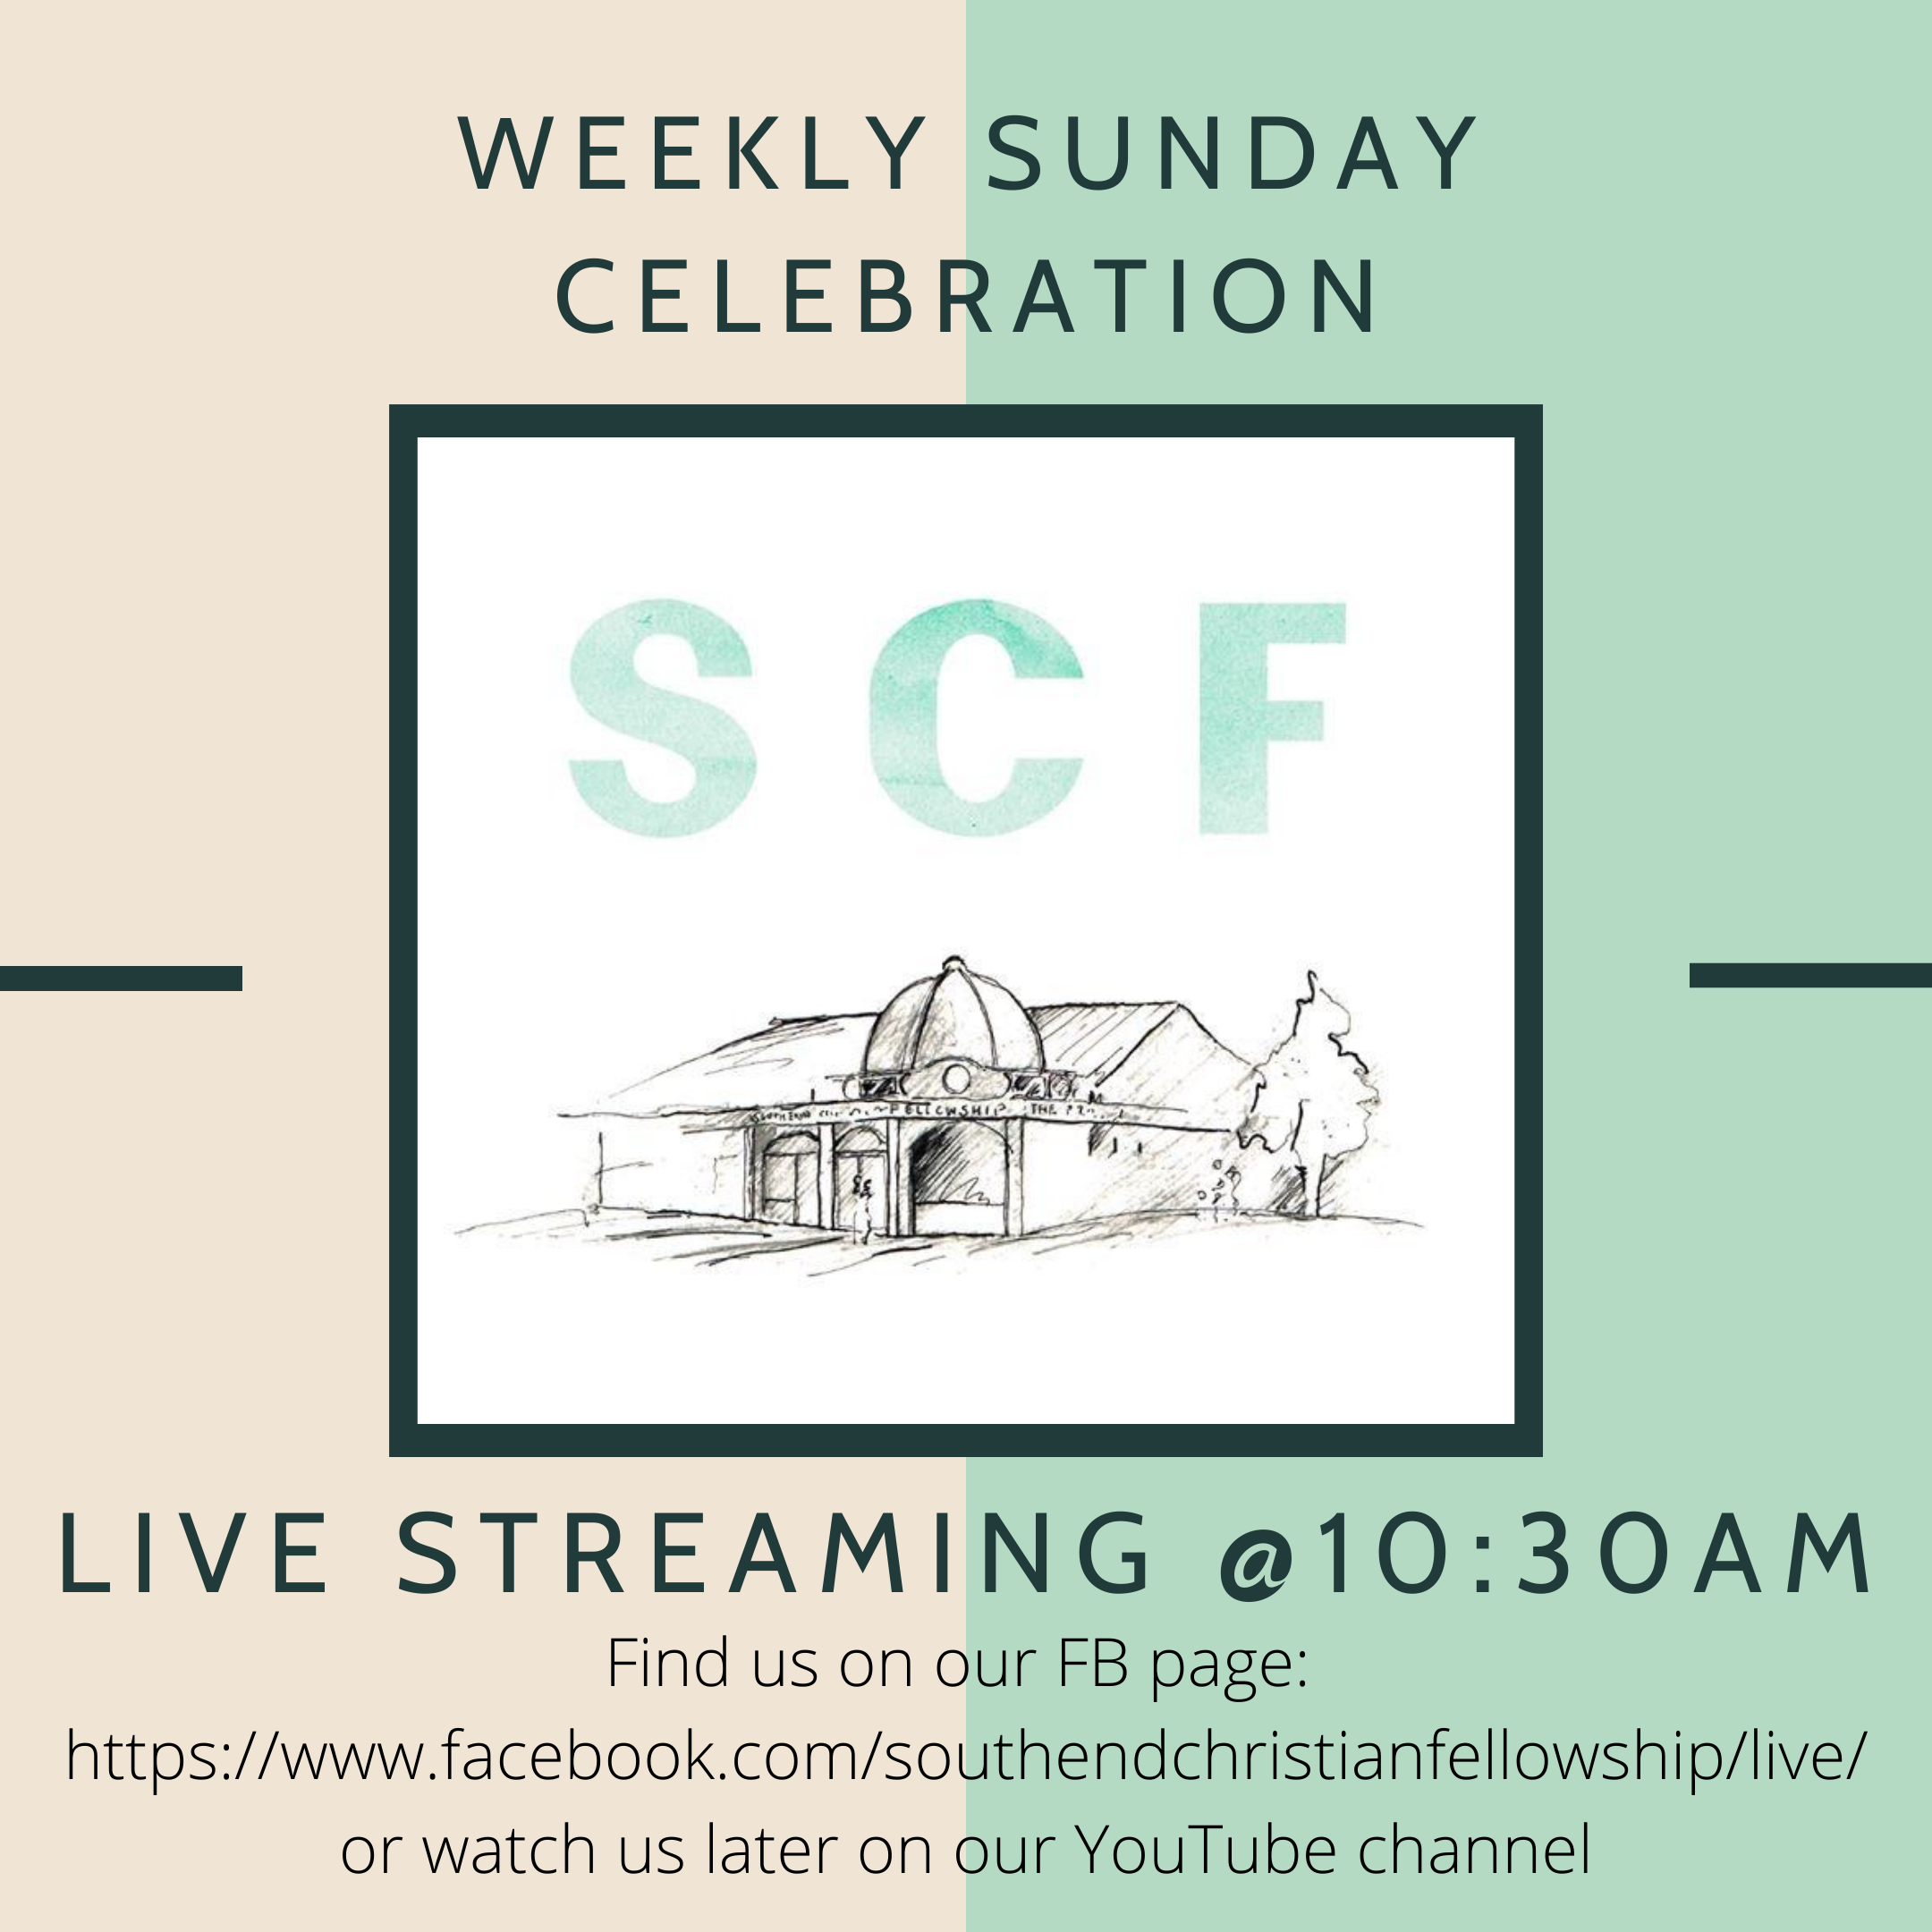 Southend Christian Fellowship Sunday Celebration Live Stream